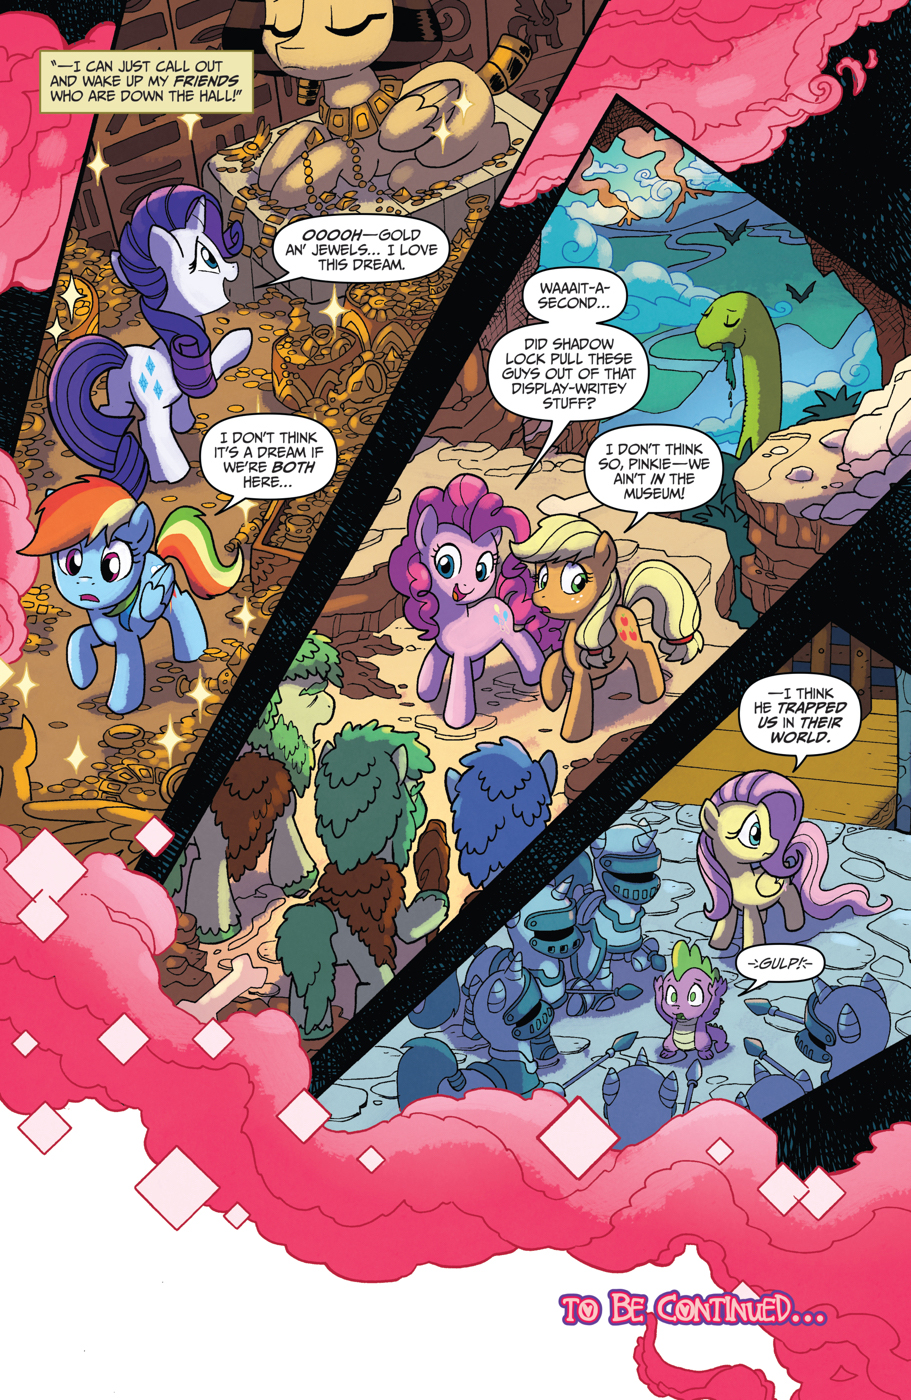 Read online My Little Pony: Friendship is Magic comic -  Issue #52 - 22